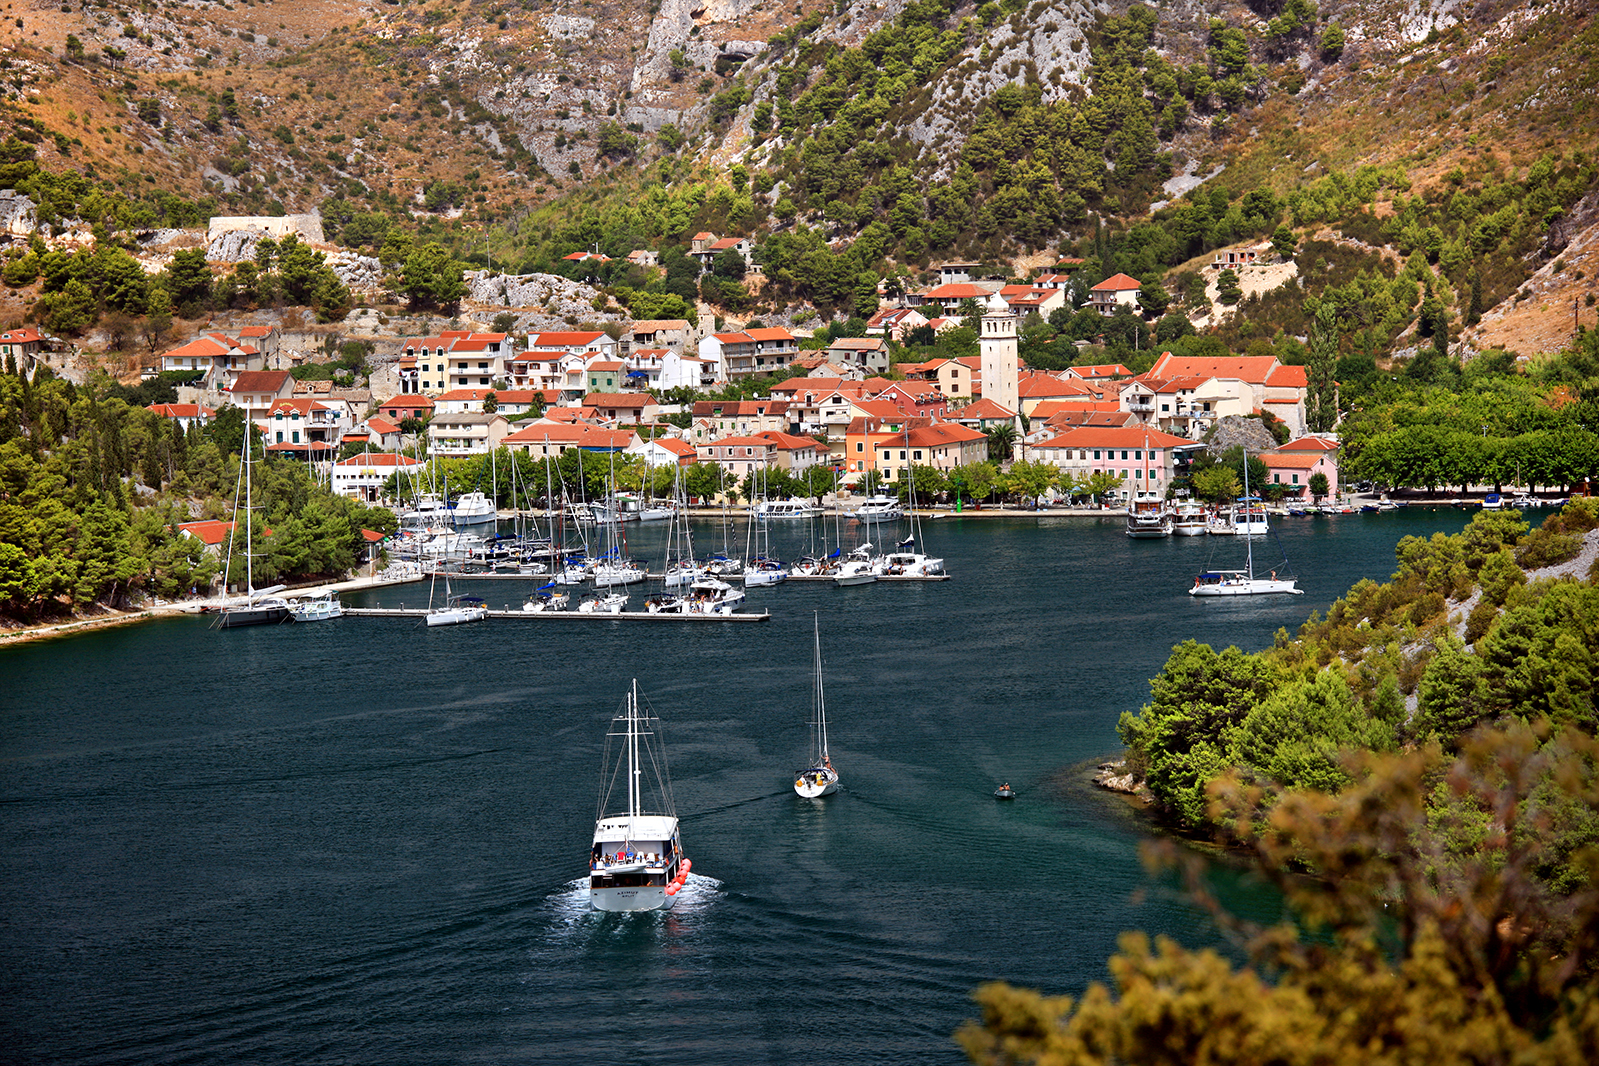 City of Skradin Croatia